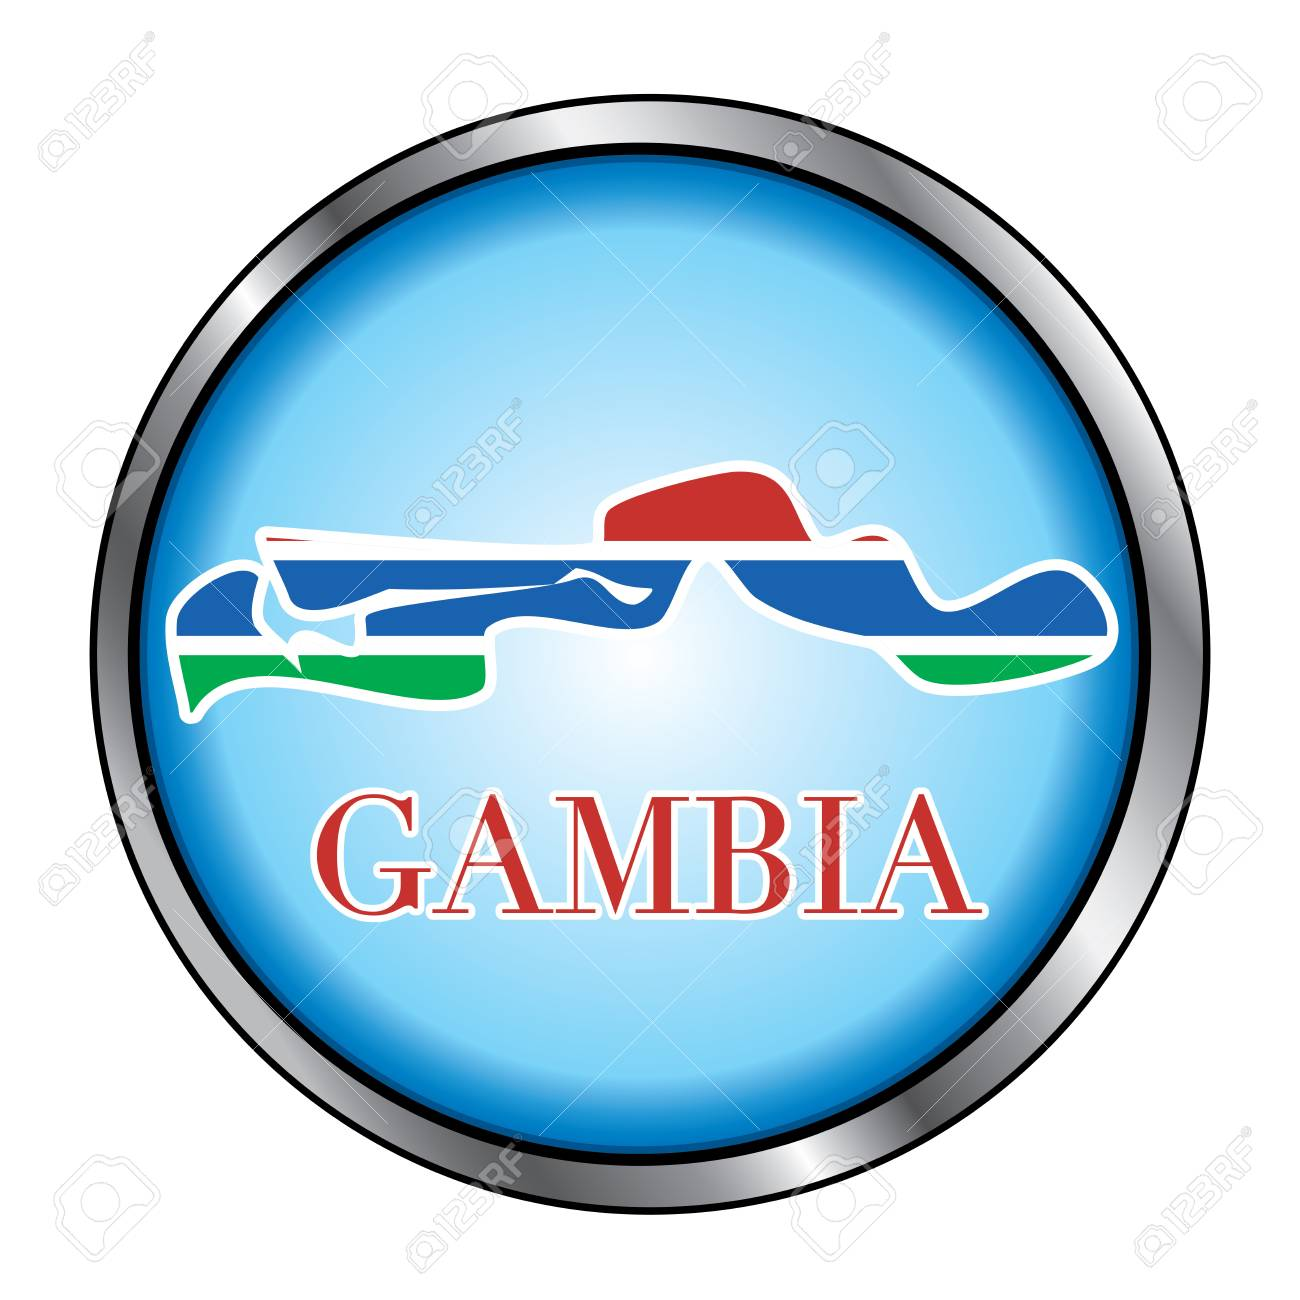 Vector Illustration for the country of Gambia Round Button. Stock Vector - 12025981